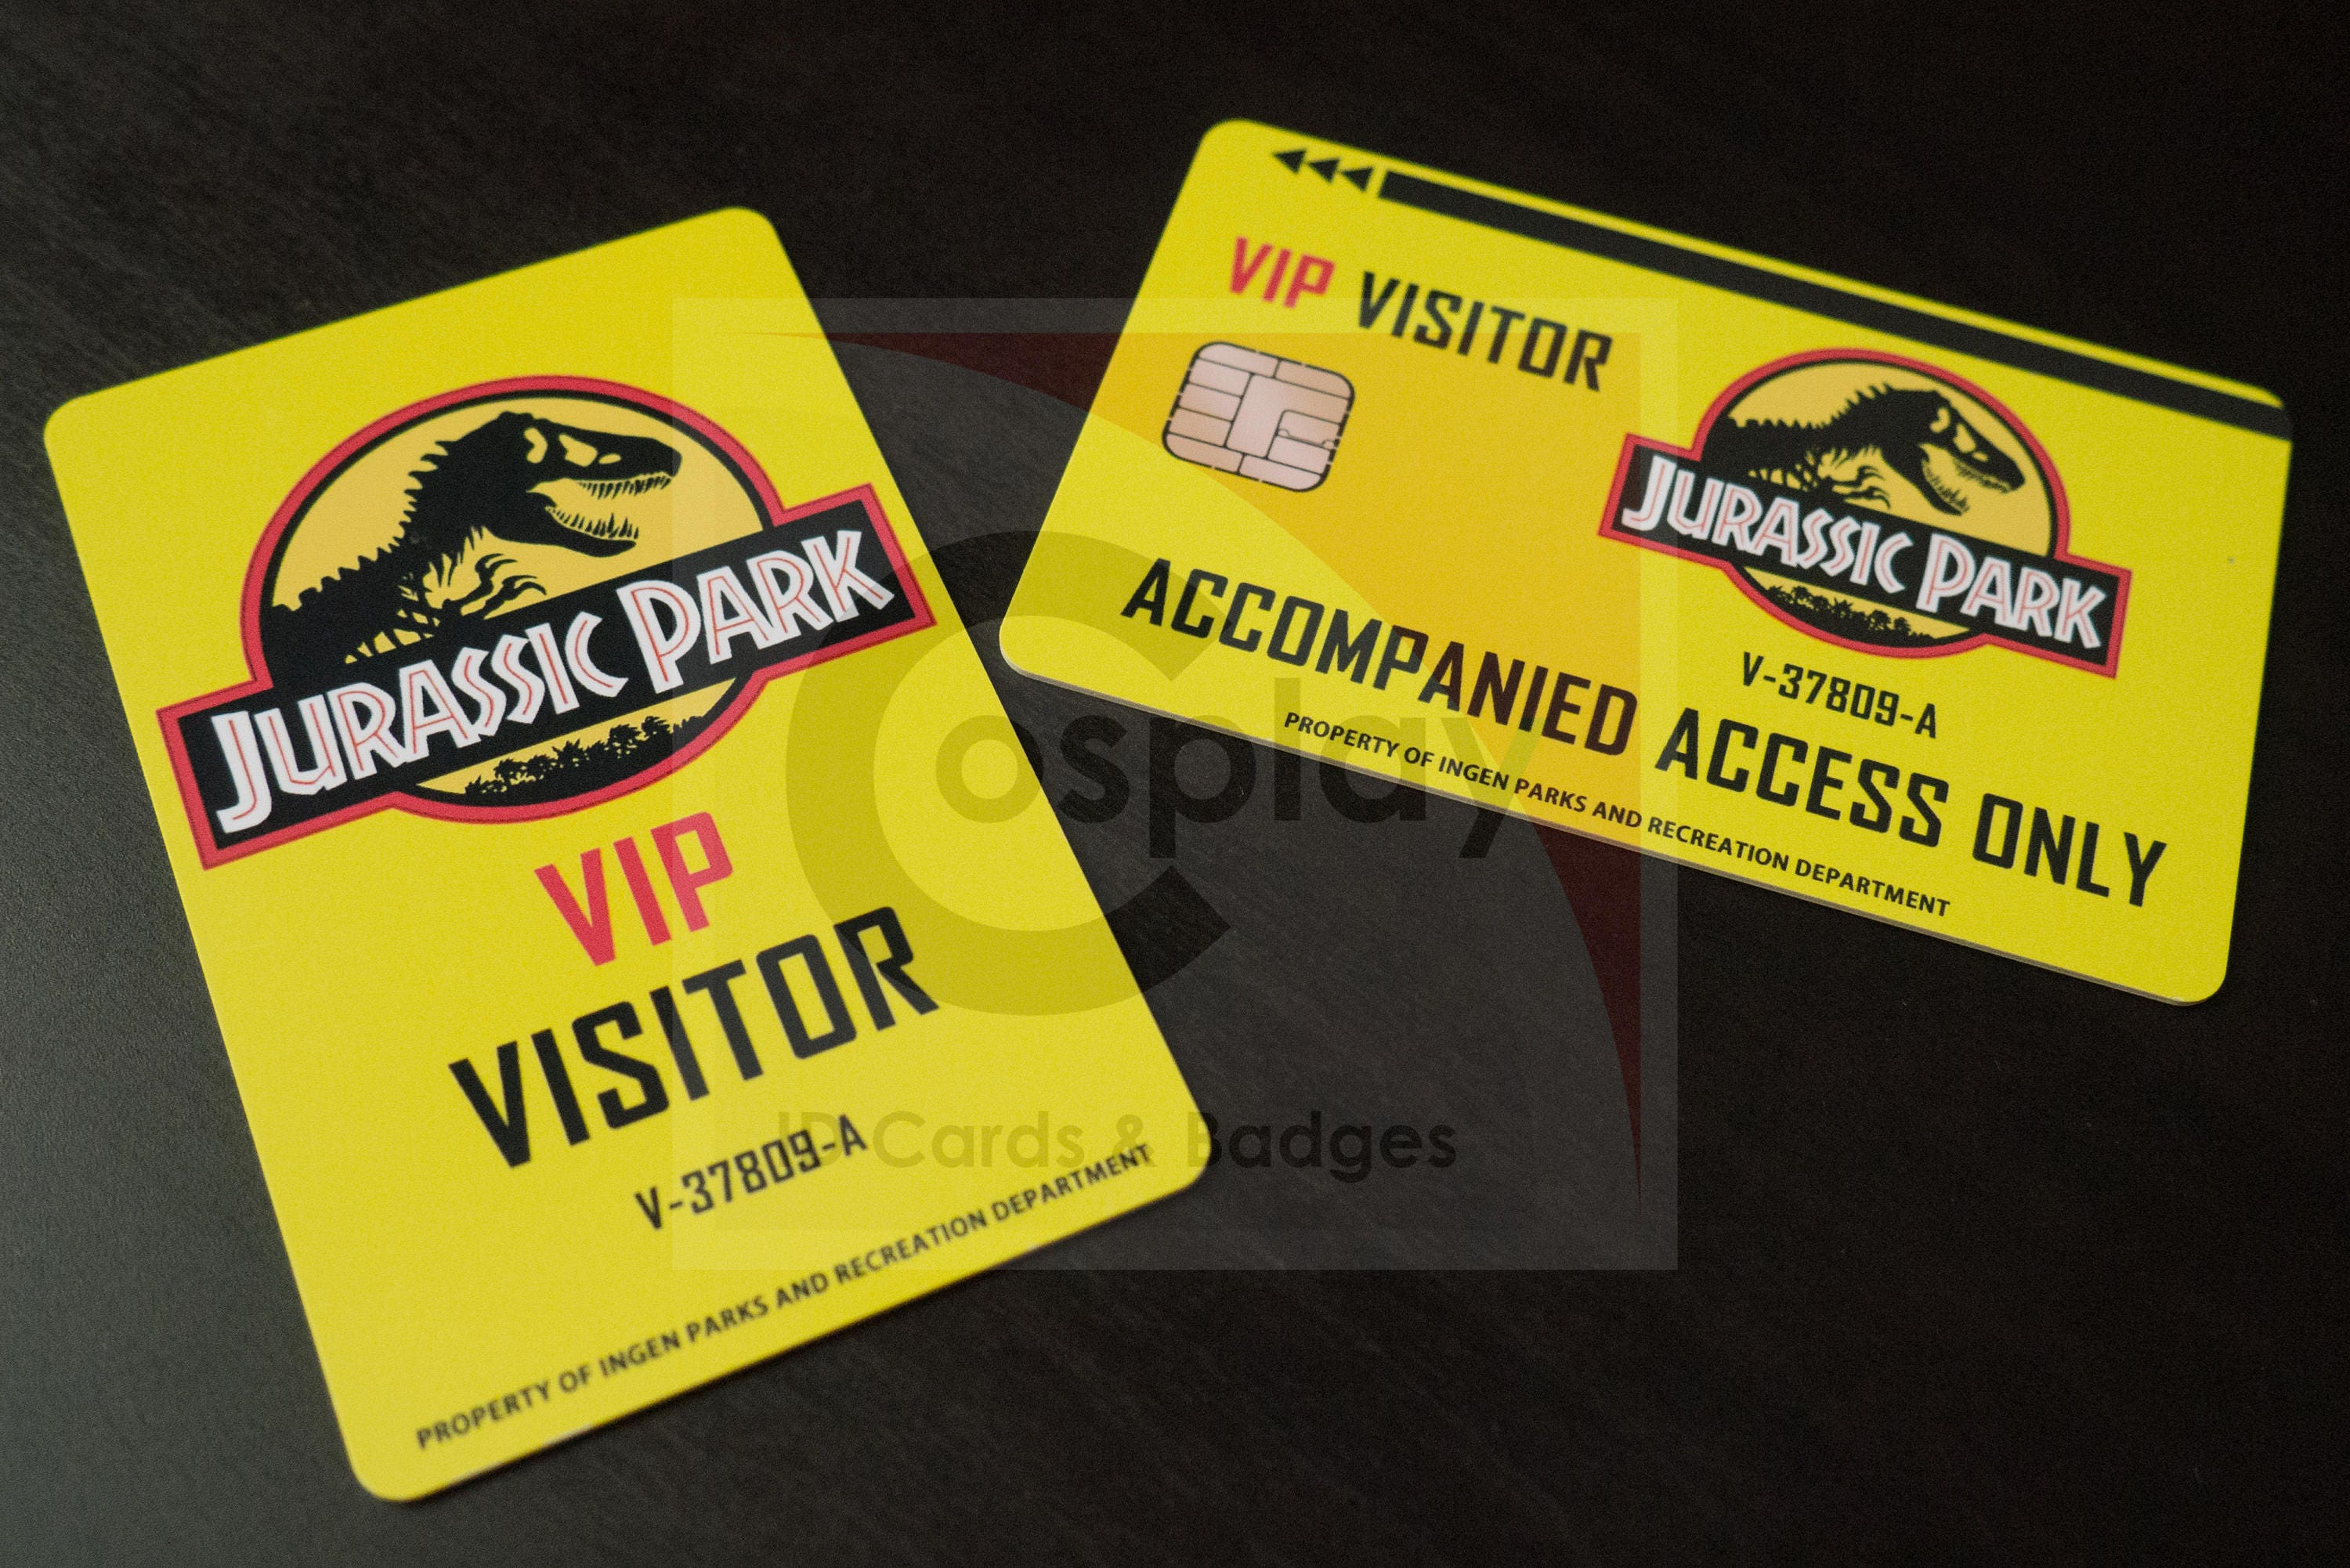 Jurassic Park World Visitor ID Badge